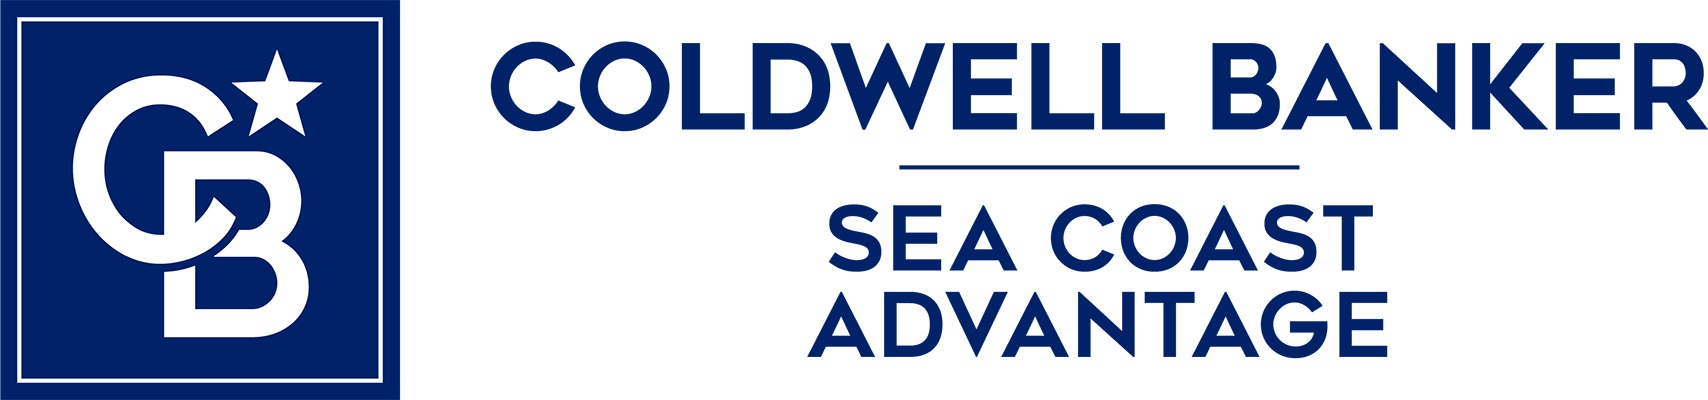 Lisa Smiraldi - Coldwell Banker Sea Coast Advantage Realty